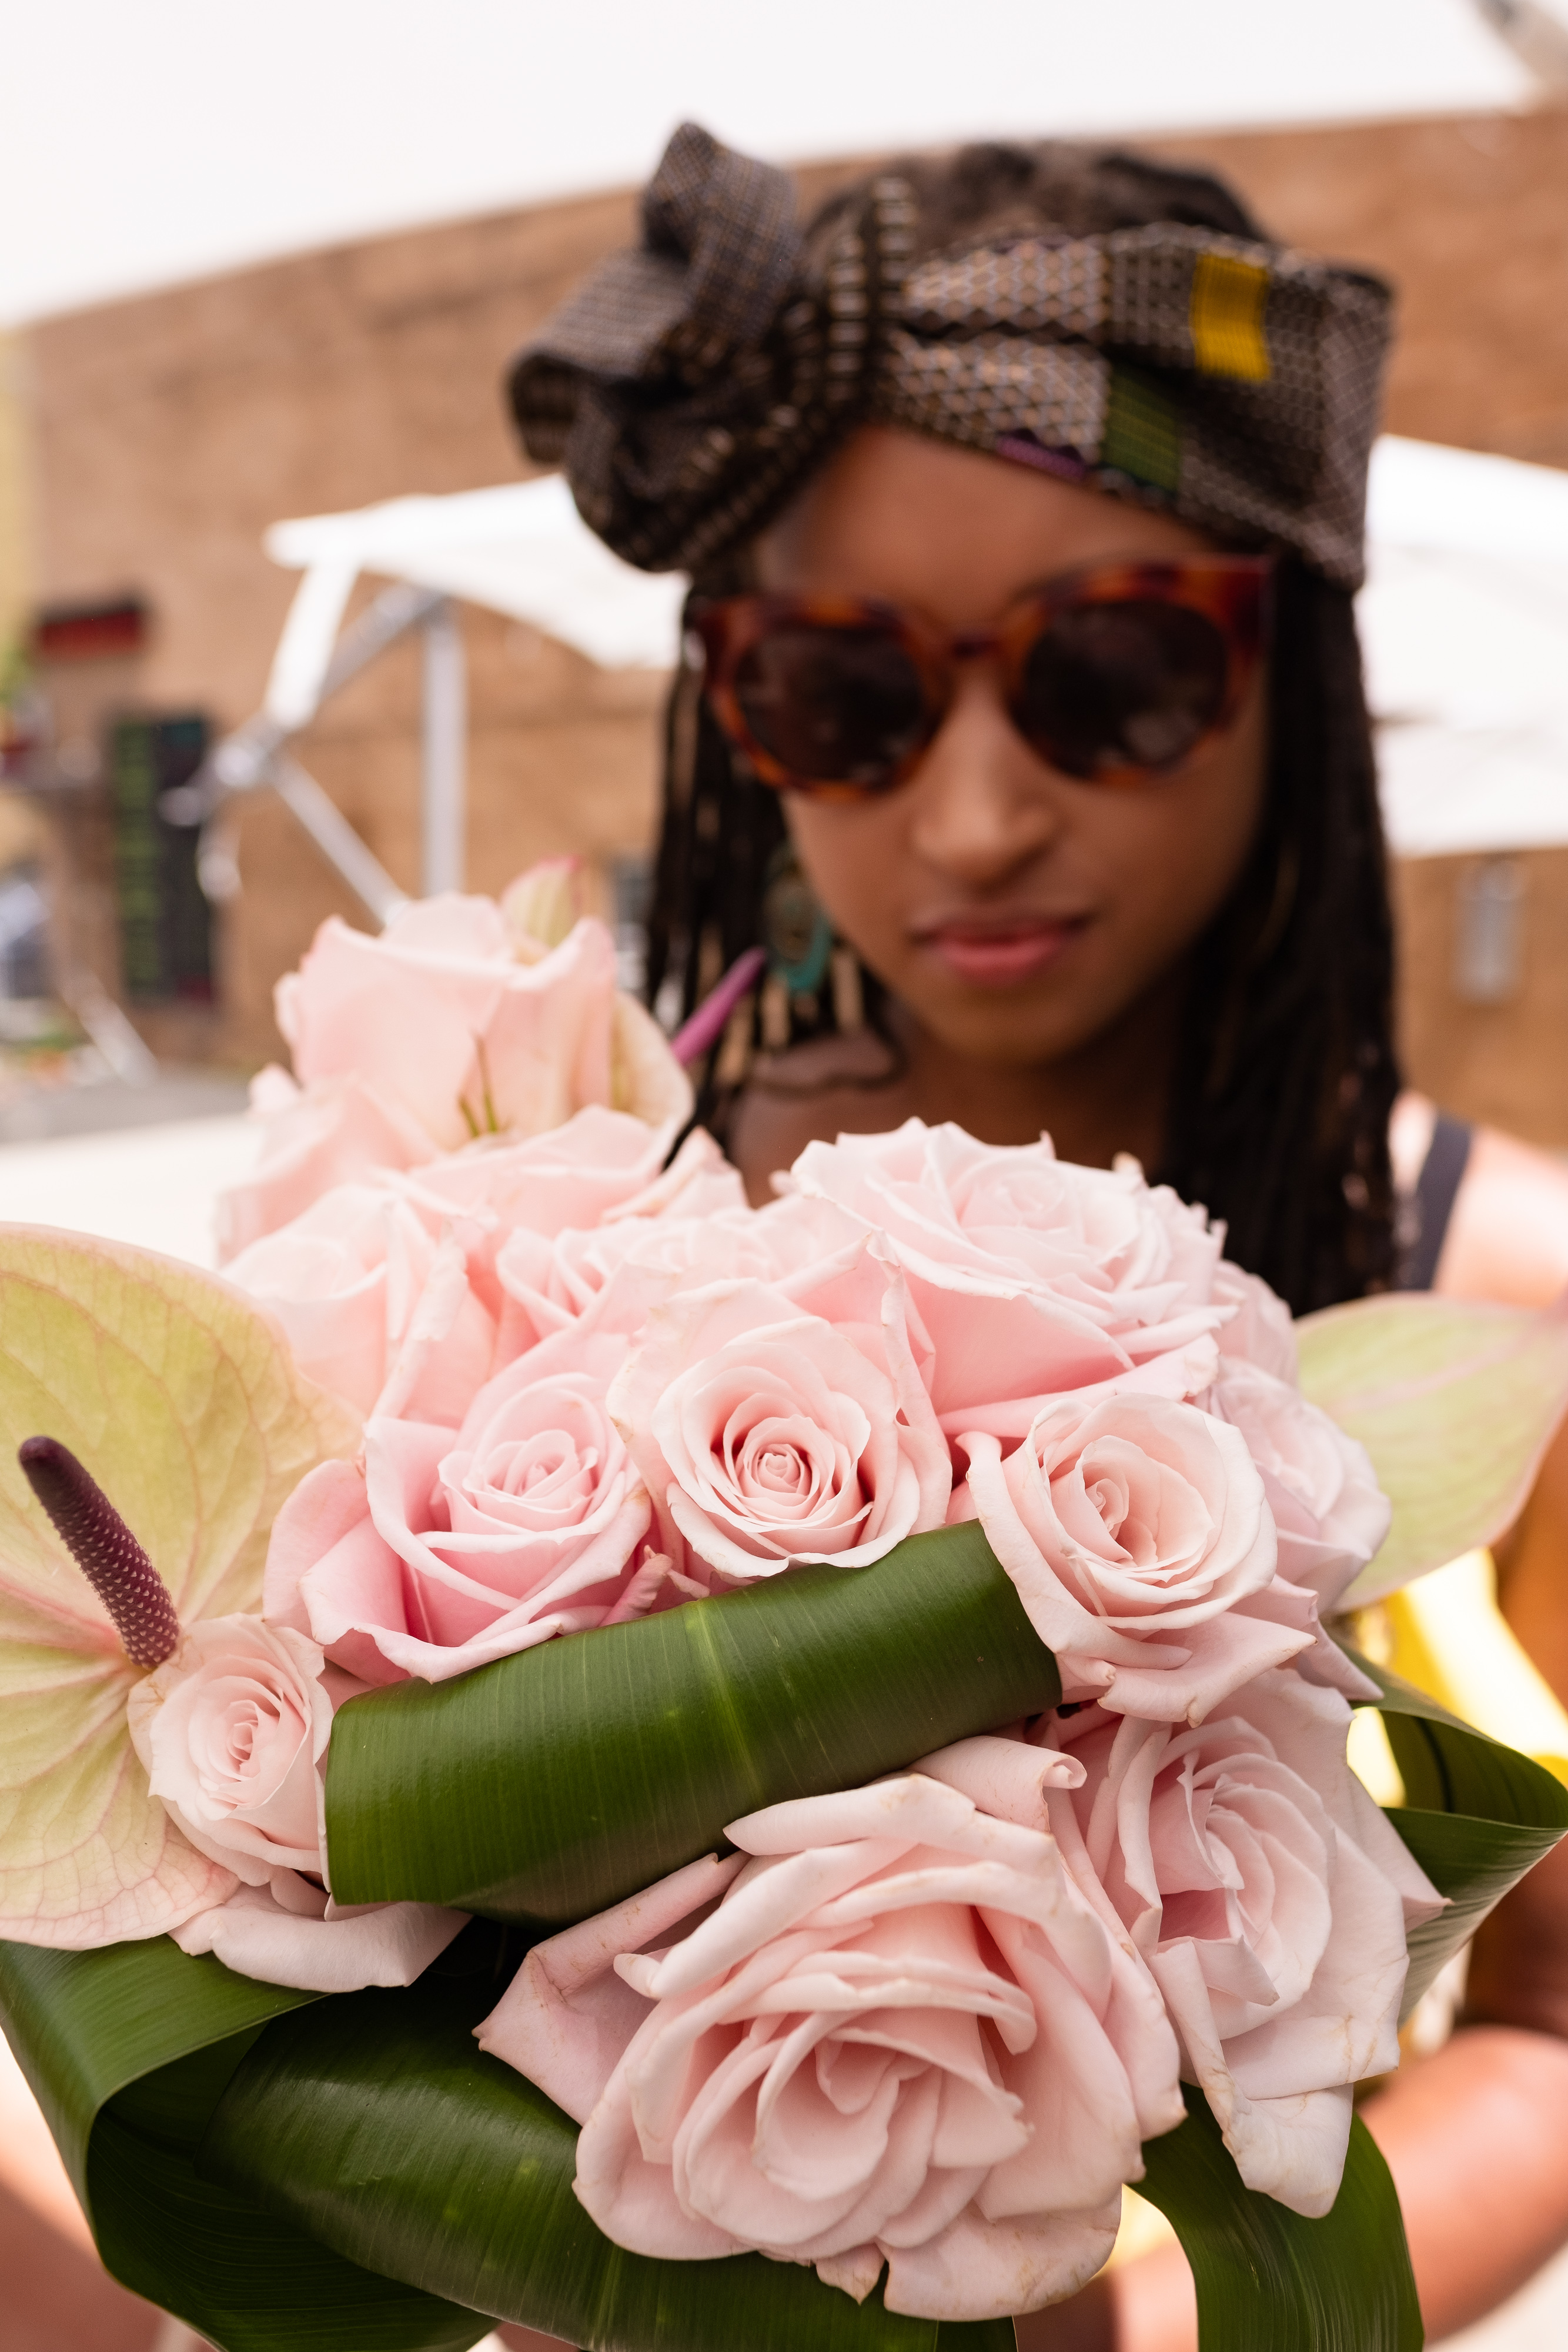 Beautiful woman wearing sunglasses and a brown headwrap with blocks of color throughout; pink roses in the foreground.